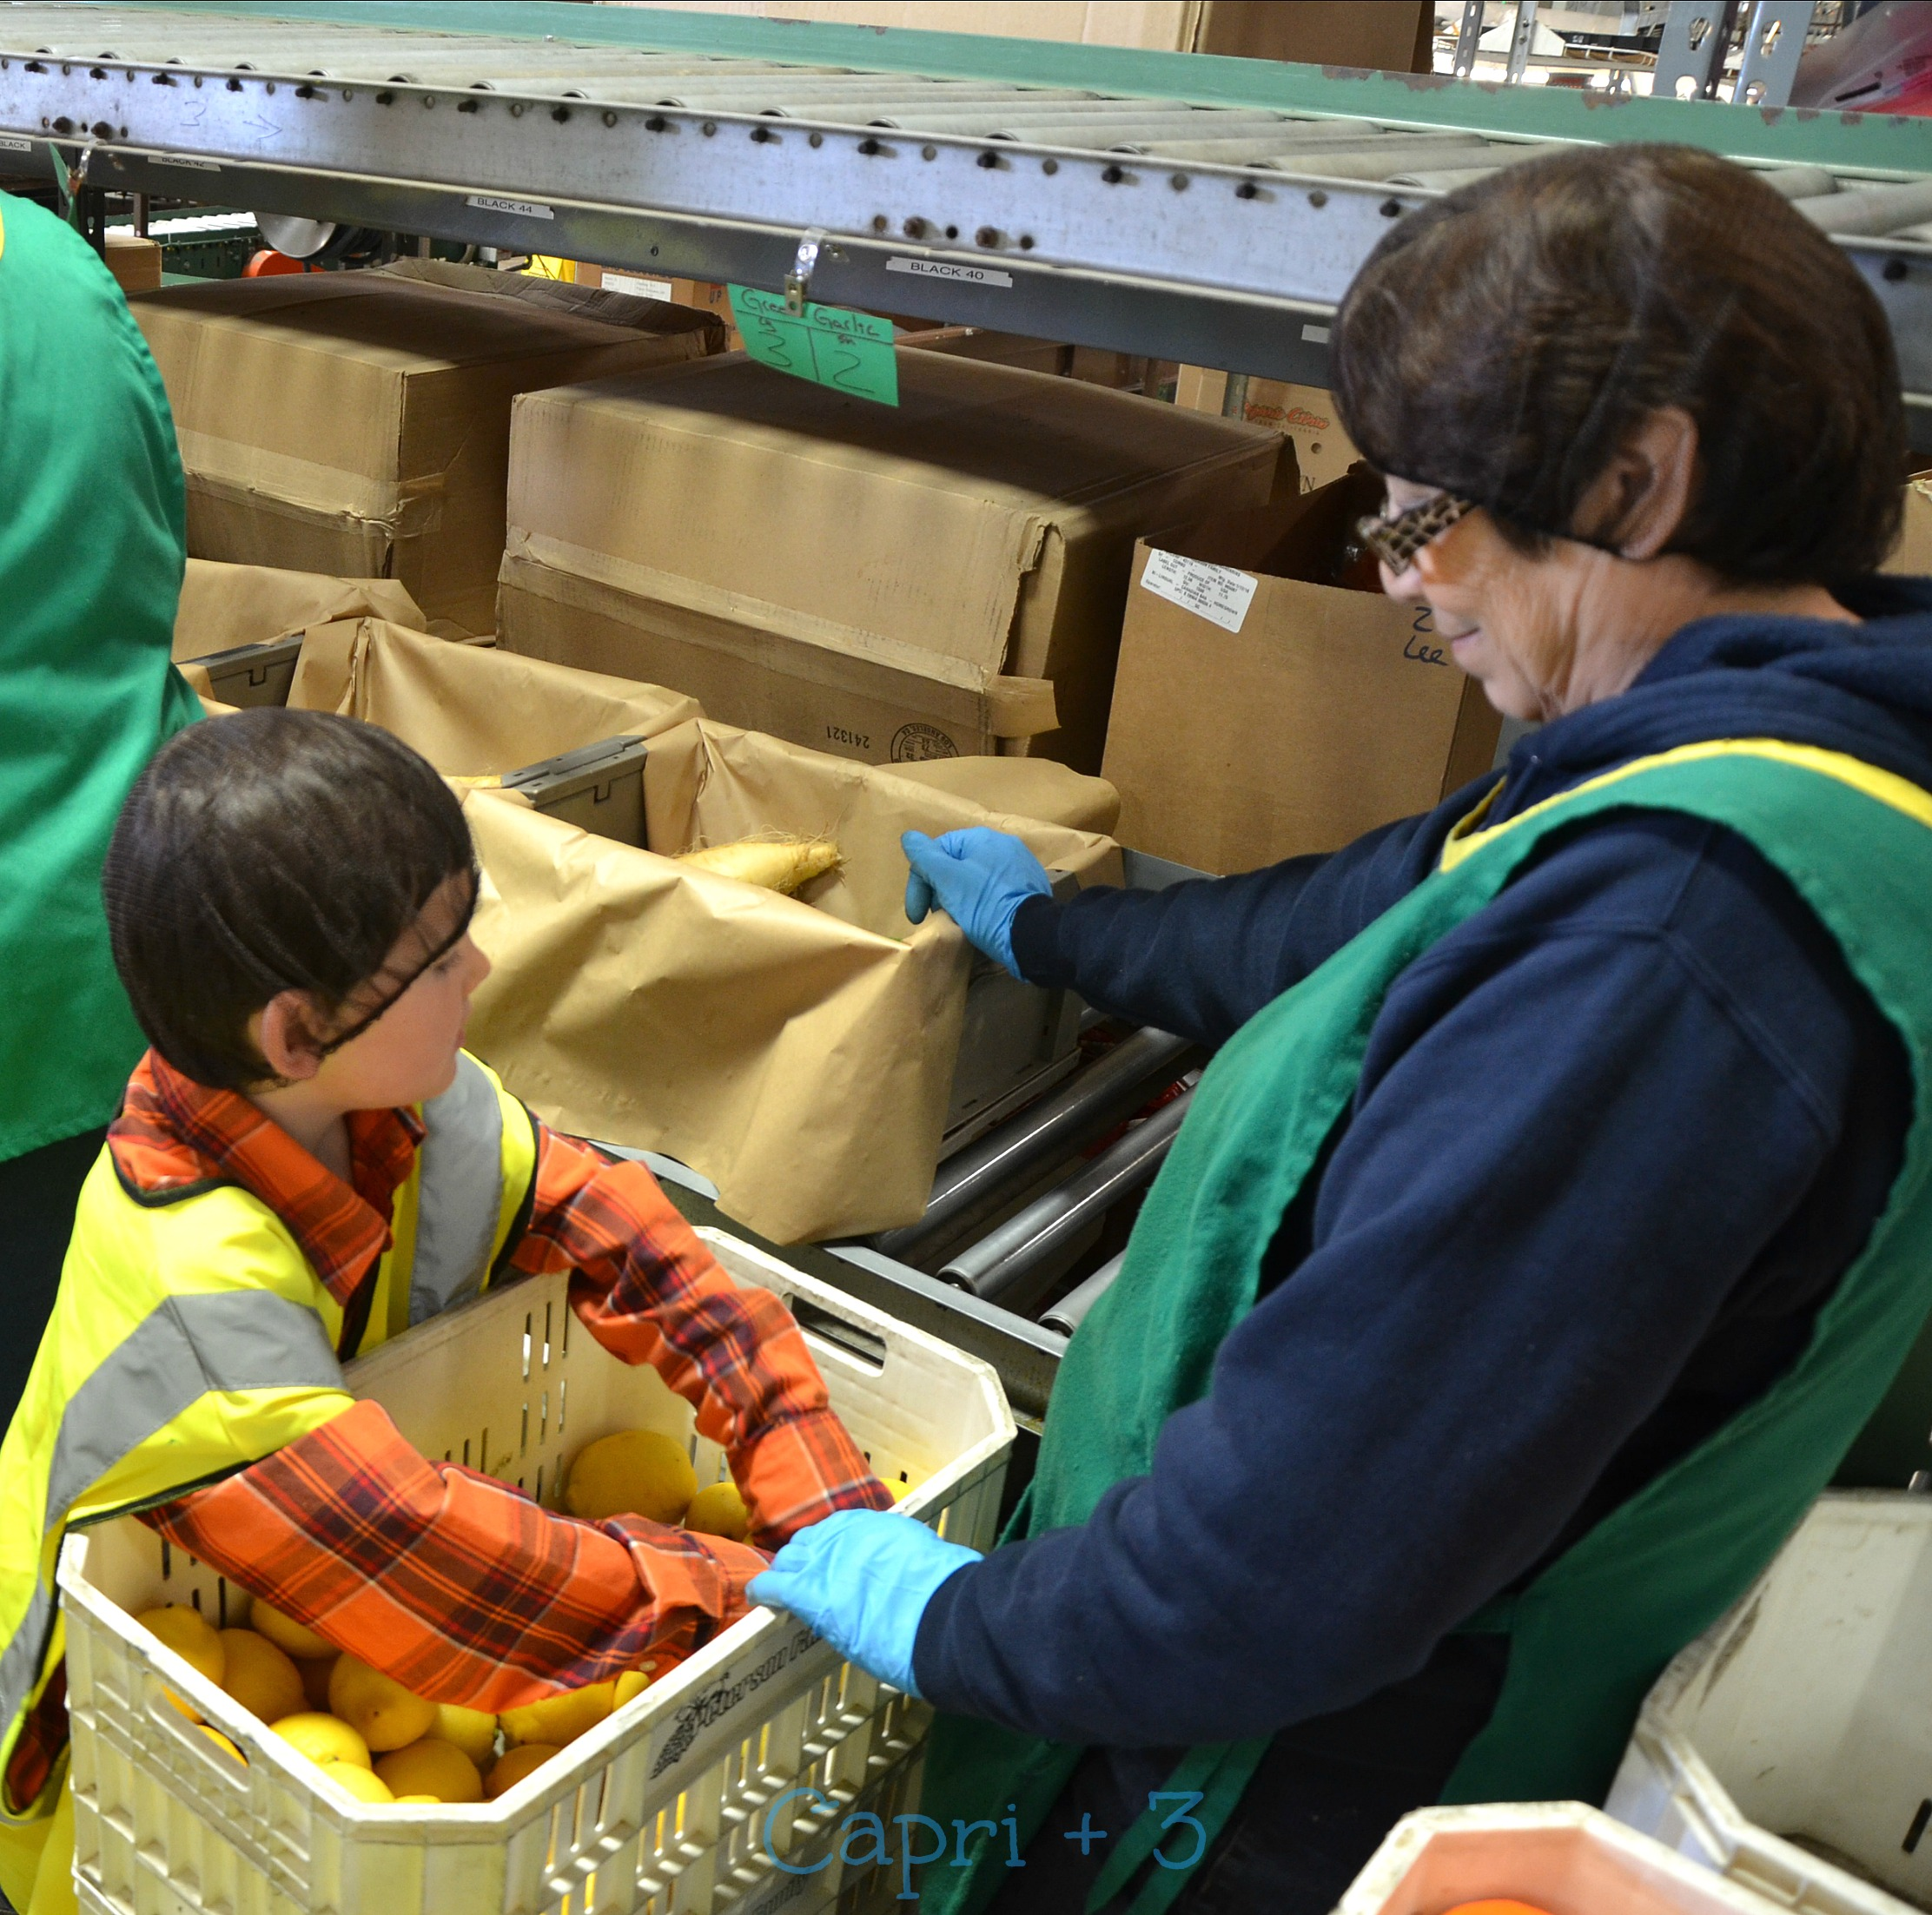 Travel to your local farm and have the children take a tour. Abundant Harvest Organics provides tours where children can participate in packing the boxes of organic fruit.